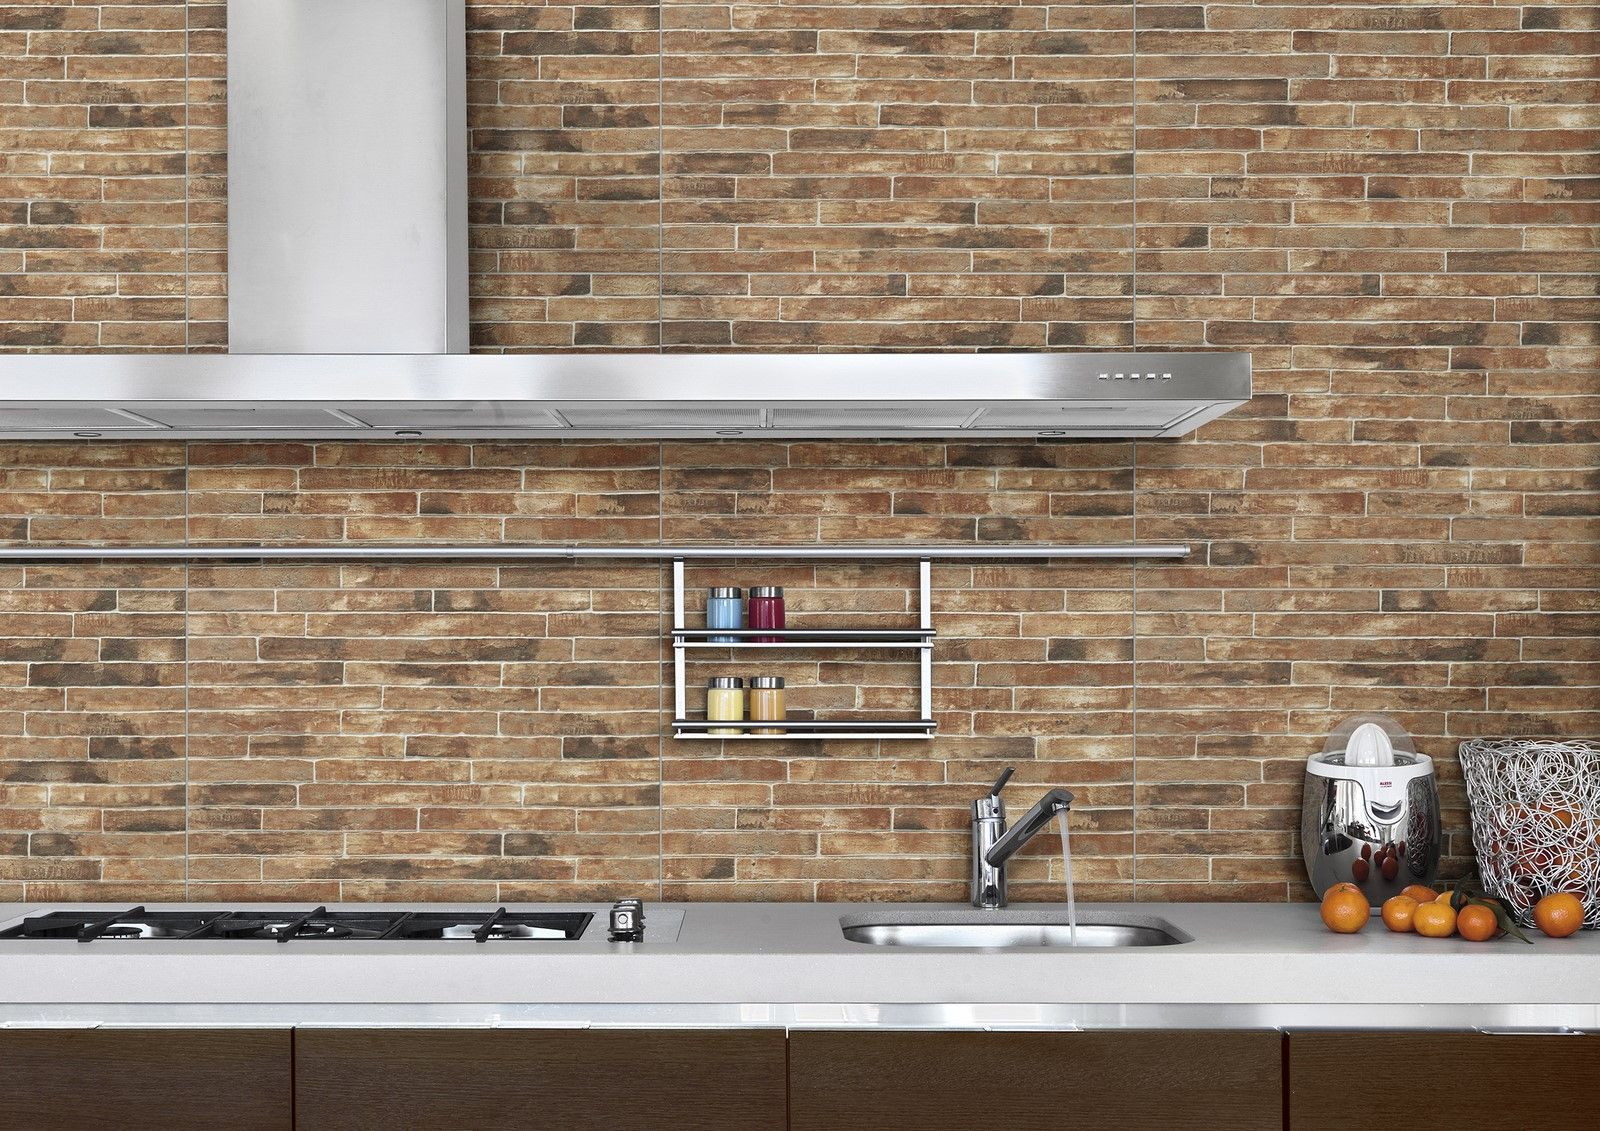 London red brick wall tile red brick walls brickwork and wall tiles london red brick wall tile from tile mountain only per tile or per sqm order a free cut sample dispatched today receive your tiles tomorrow dailygadgetfo Choice Image